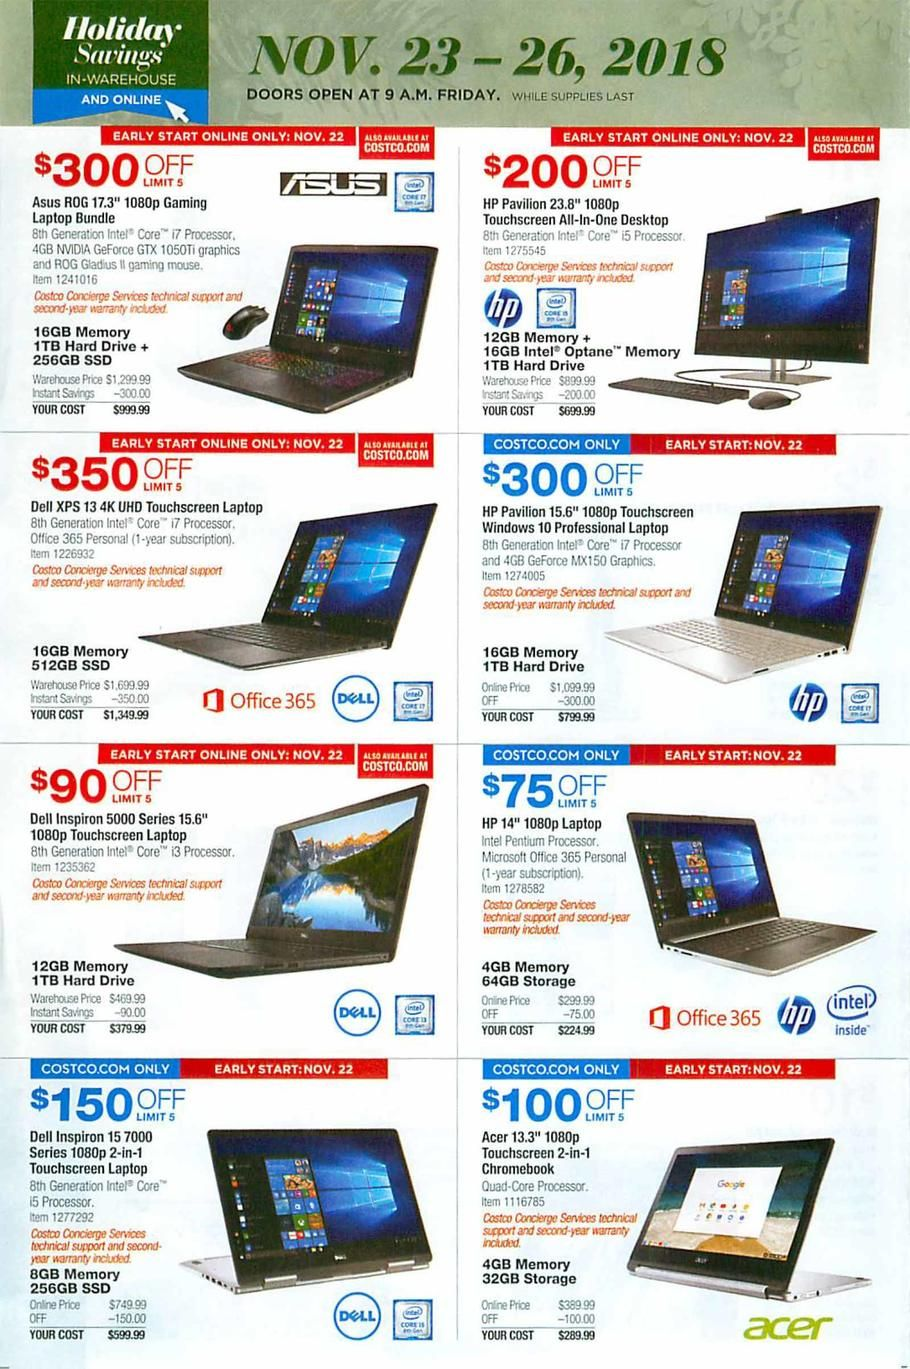 Costco Black Friday 2018 Ads Scan Deals And Sales See The Costco Black Friday Ad 2018 At 101blackfriday Com Find The Bes Black Friday Ads Black Friday Friday